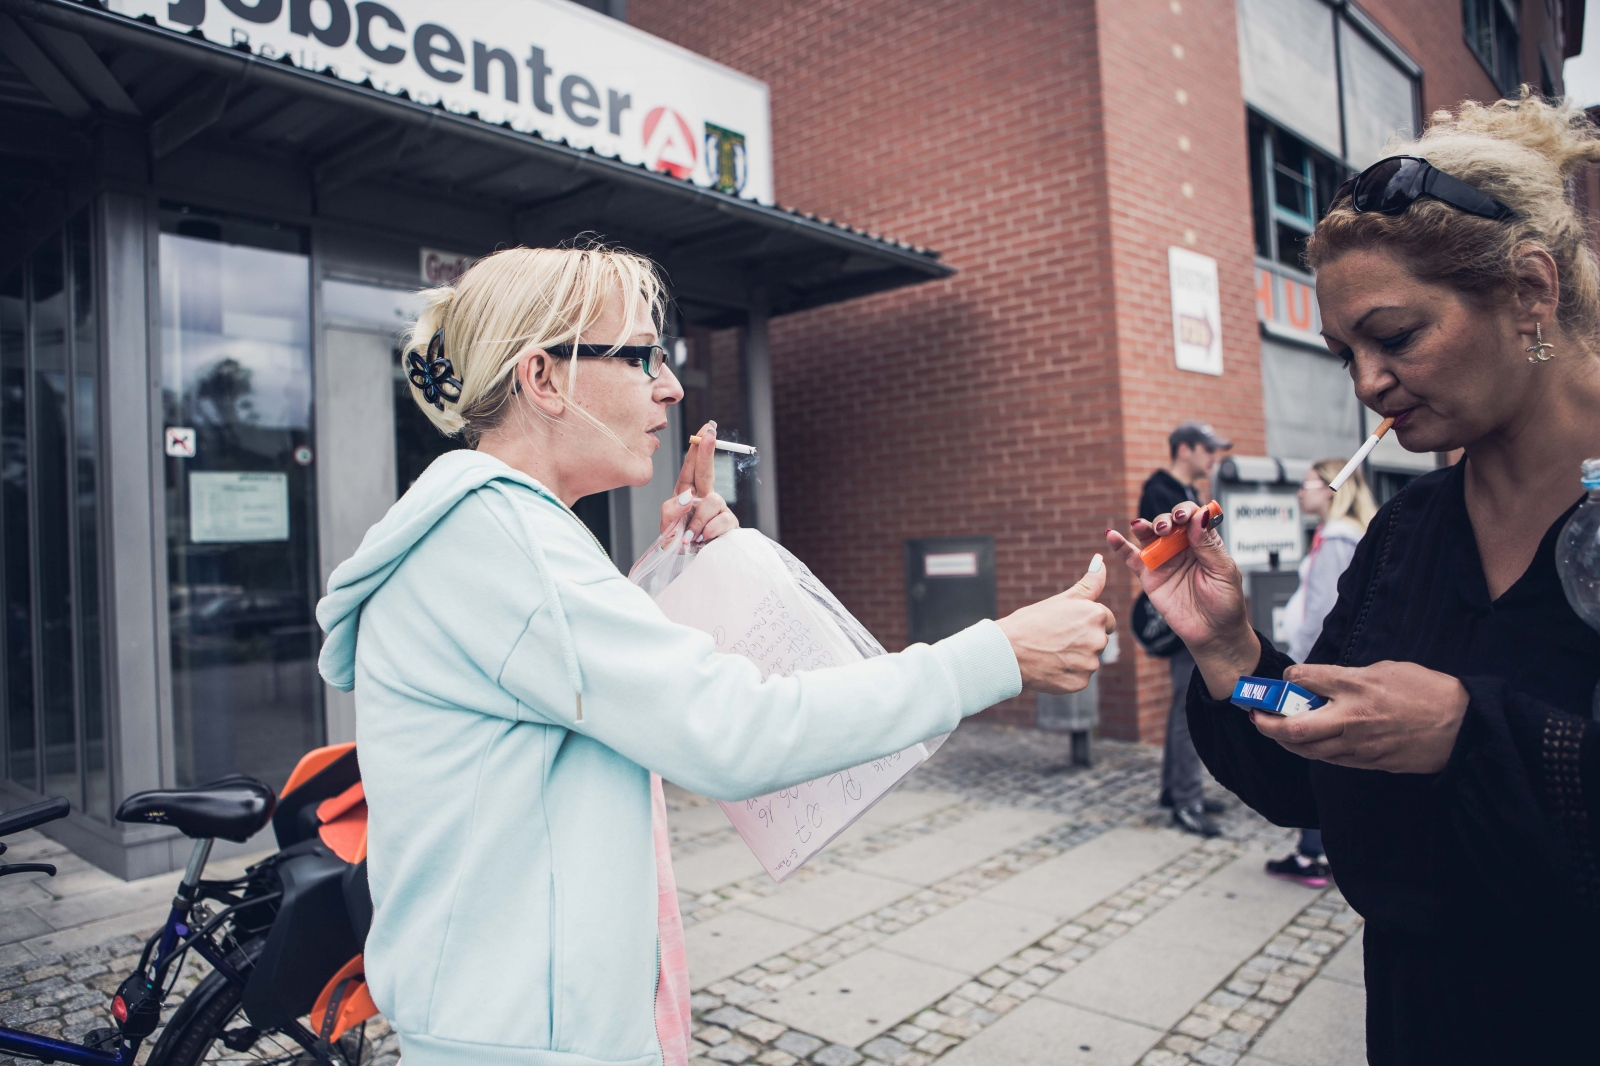 Claudia B., 37, shares a smoke with another woman in front of the jobcenter in Berlin, GERMANY, on June 27, 2016. Claudia receives the so-called Hartz-IV unemployment social benefit. This day she applied for furniture money for her new apartment.